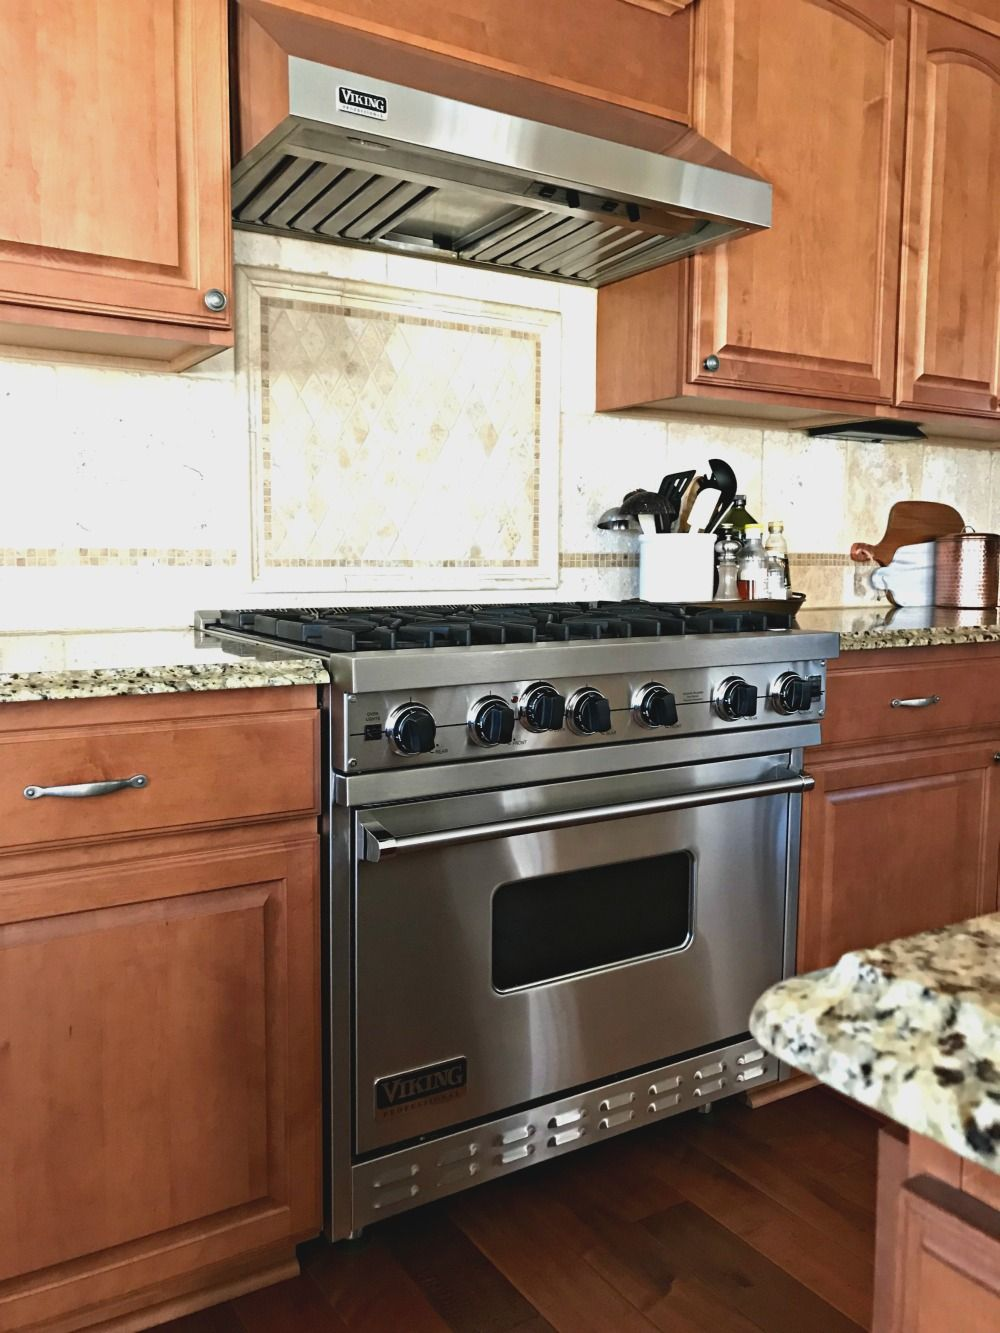 Clean Your Gas Range And Oven Without Chemicals Gas Stove Cleaning Viking Stove Cleaning